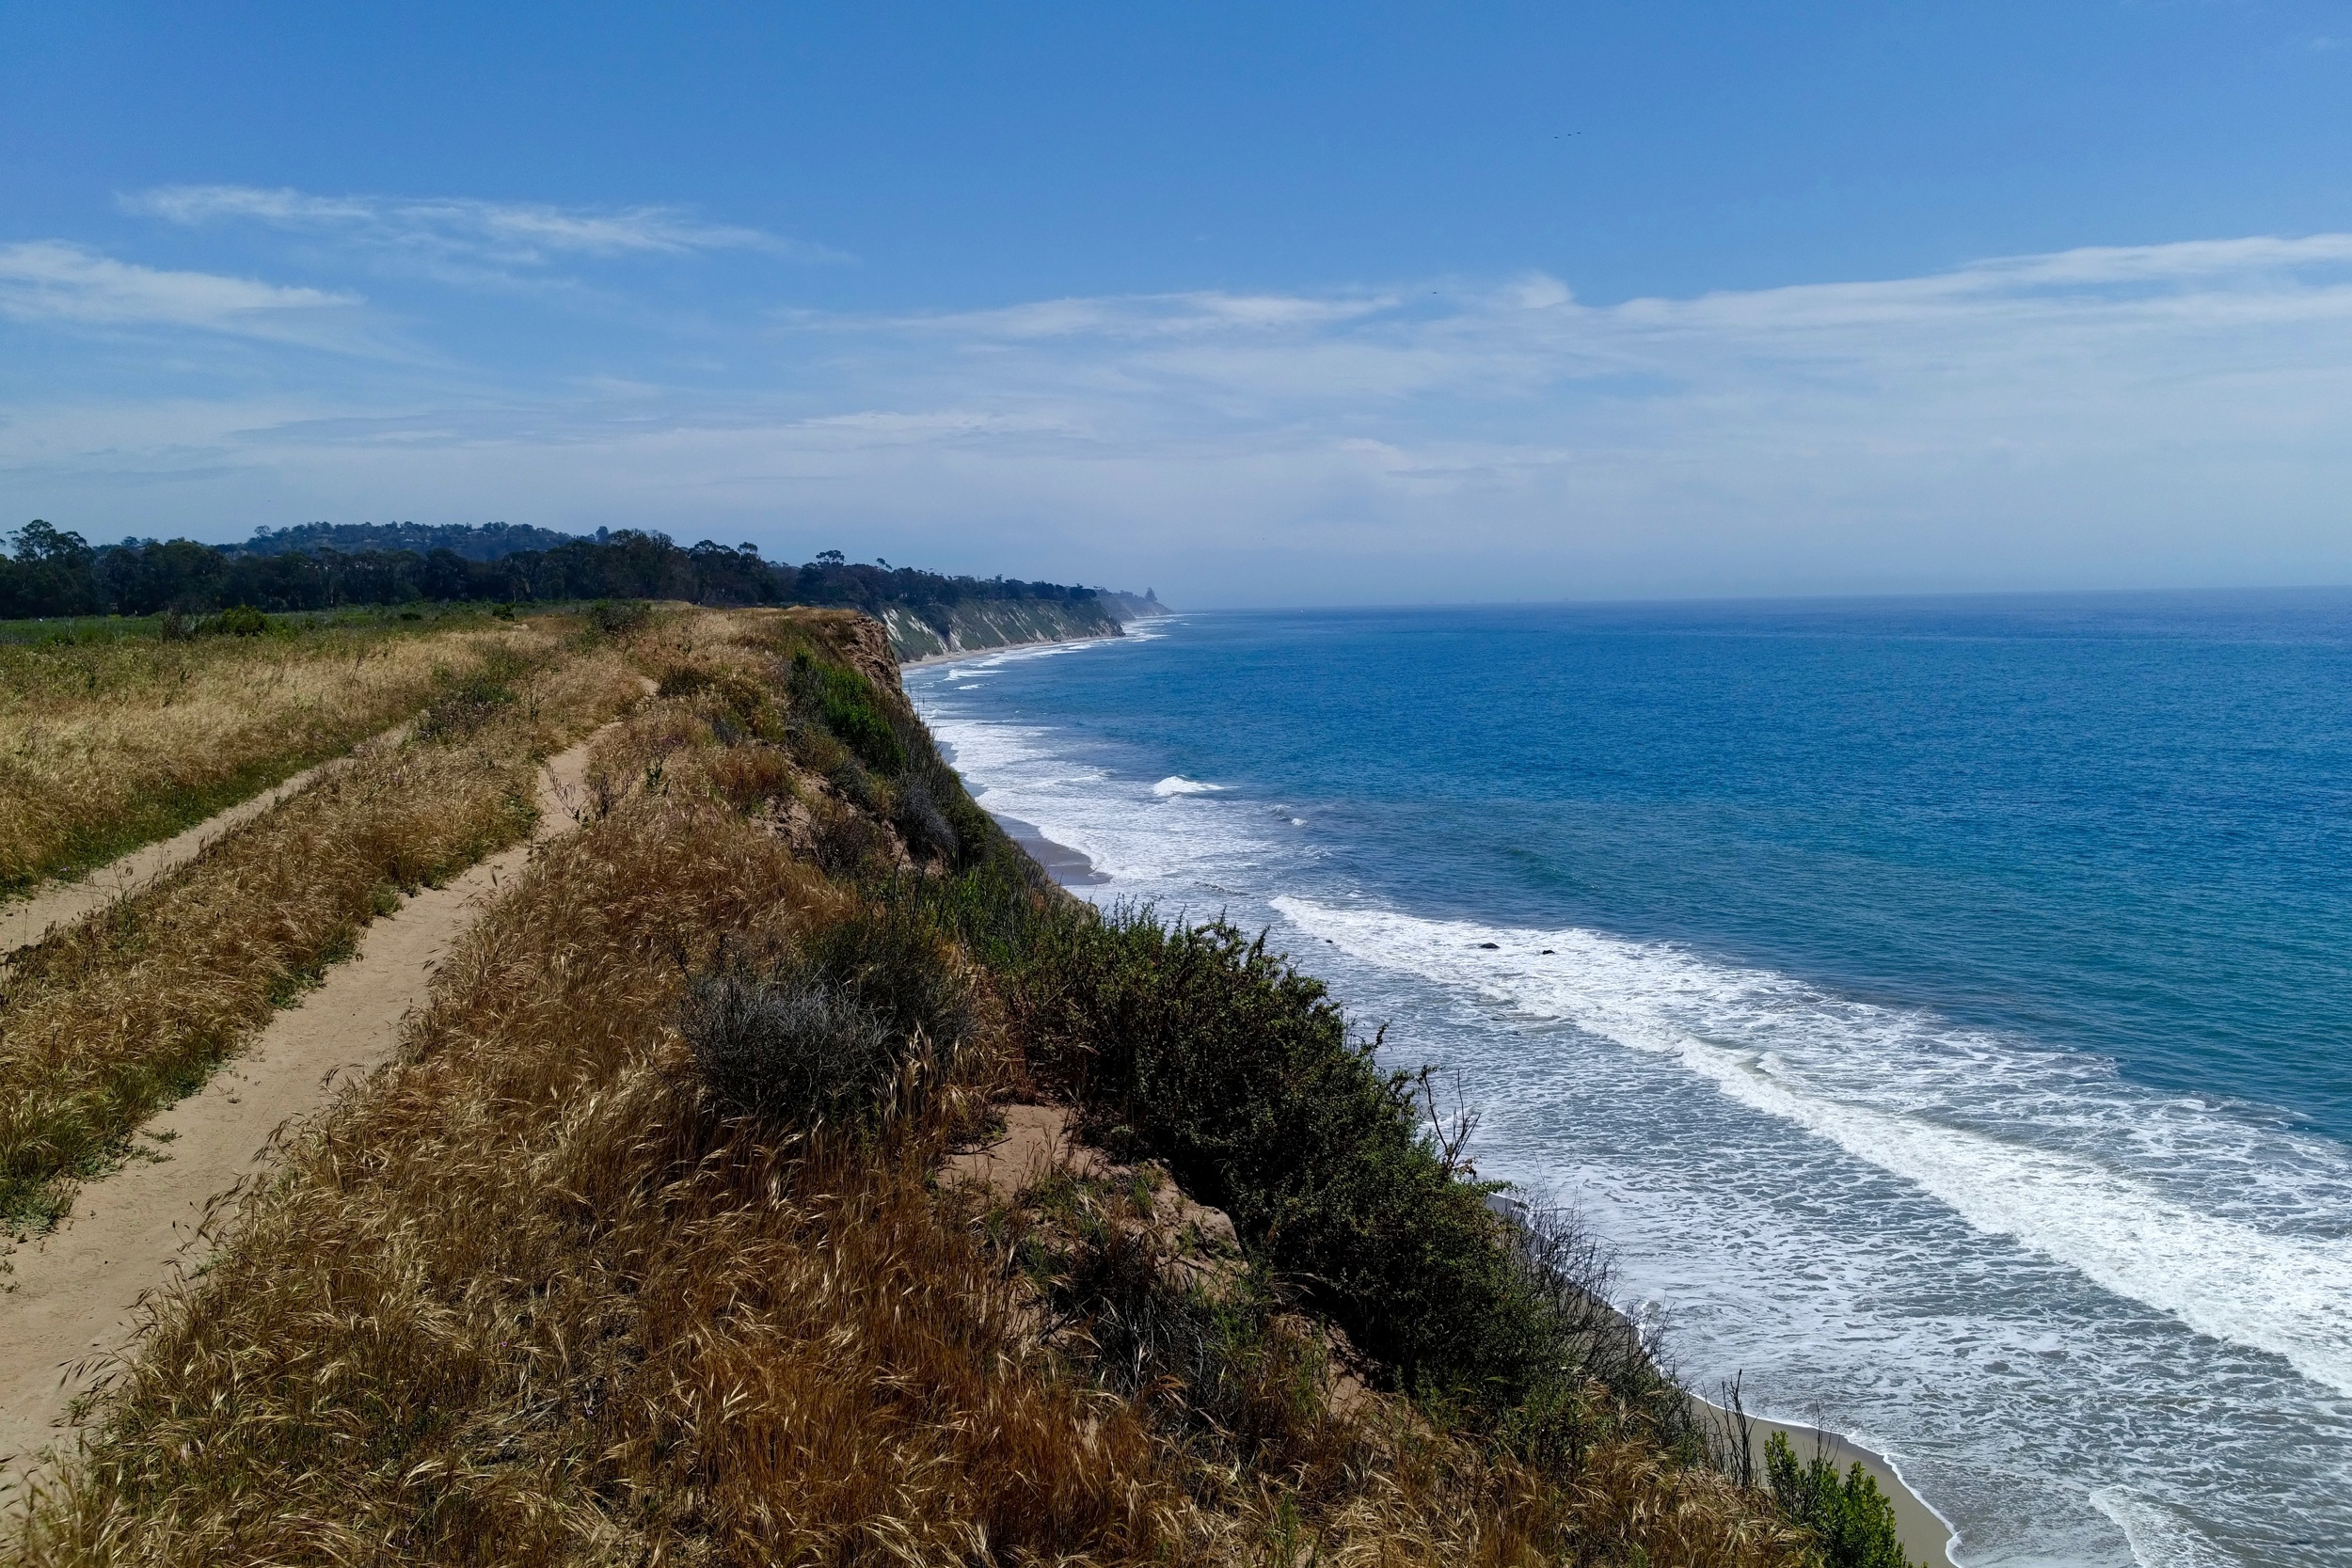 """There is an interesting section of undeveloped coast between Ventura and Santa Barbara that is a regional park. It reminds me of a """"light""""version of the Lost Coast area south of Eureka."""